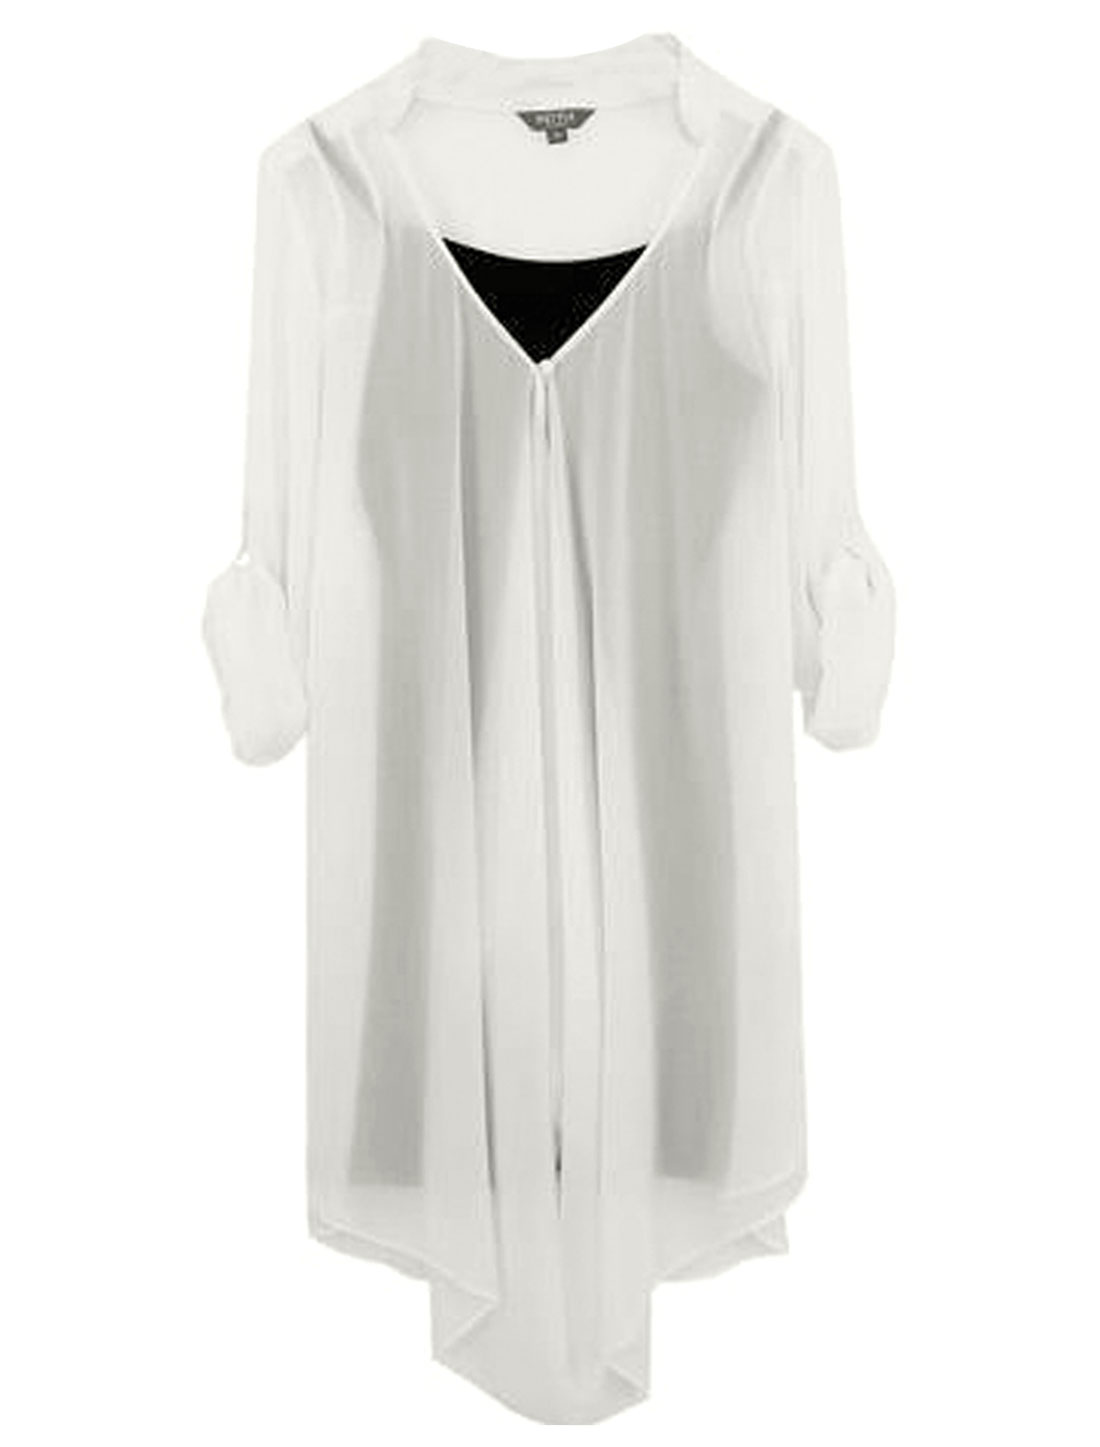 Women Pullover Black Cami w Draped Design Front Soft Chiffon Tunic Shirt White XS